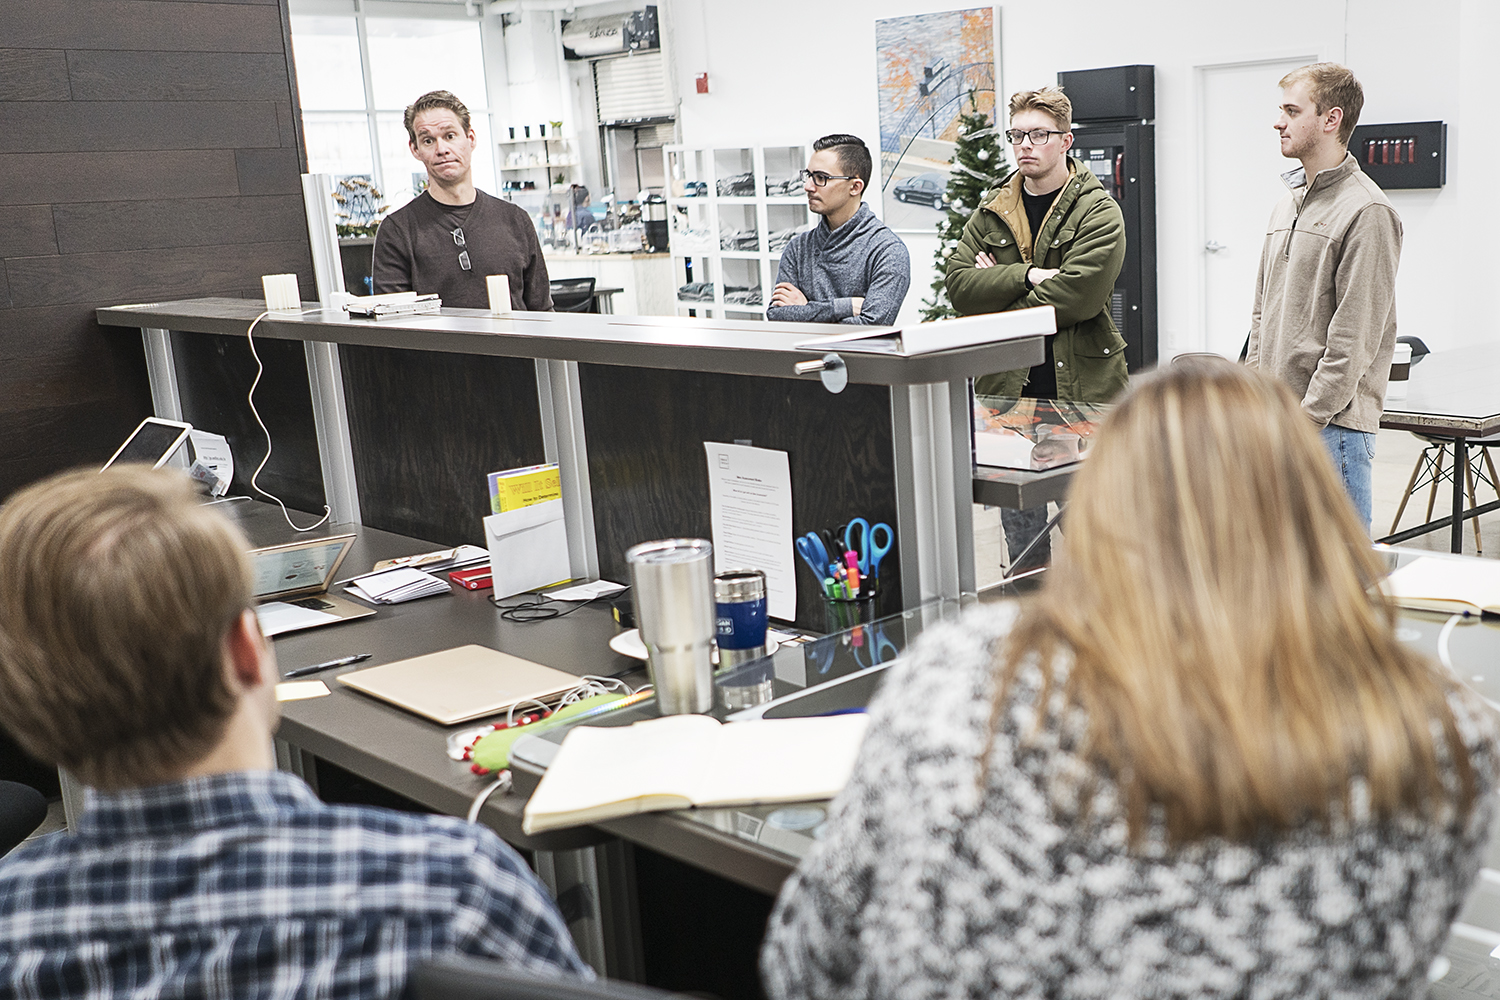 Flint, MI - Friday, December 22, 2017: David Ollila, 47, of Linden, (left) President and Chief Innovation Officer for Skypoint Ventures has a meeting with the staff of 100k Ideas to get the day started.Tim Galloway for FlintSide